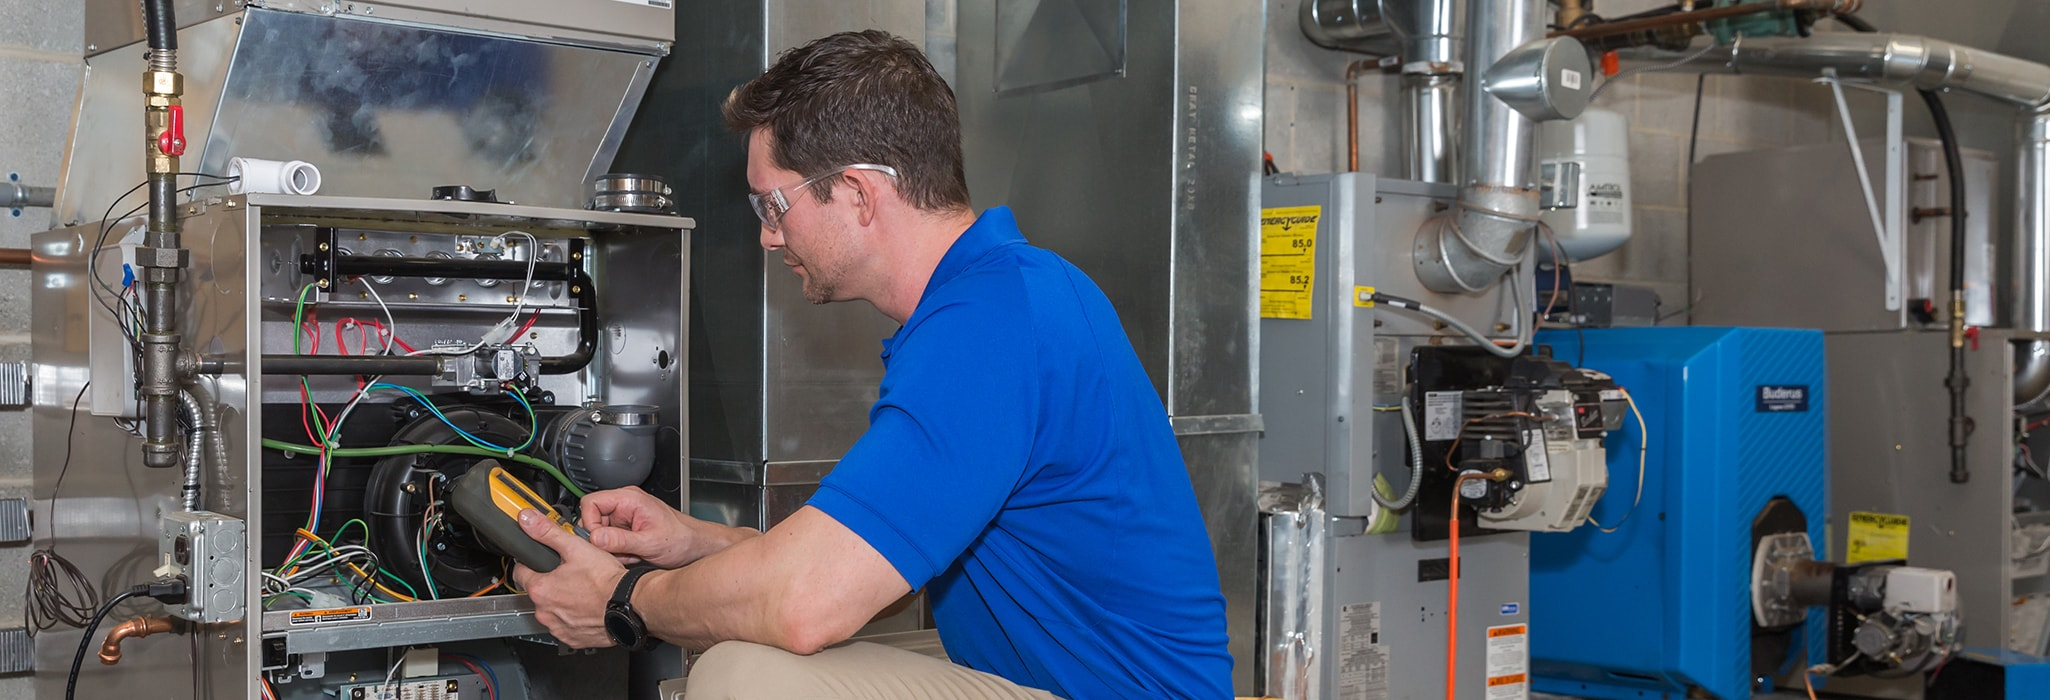 Burns & McBride technician using a multimeter to check the electrical components of a furnace.